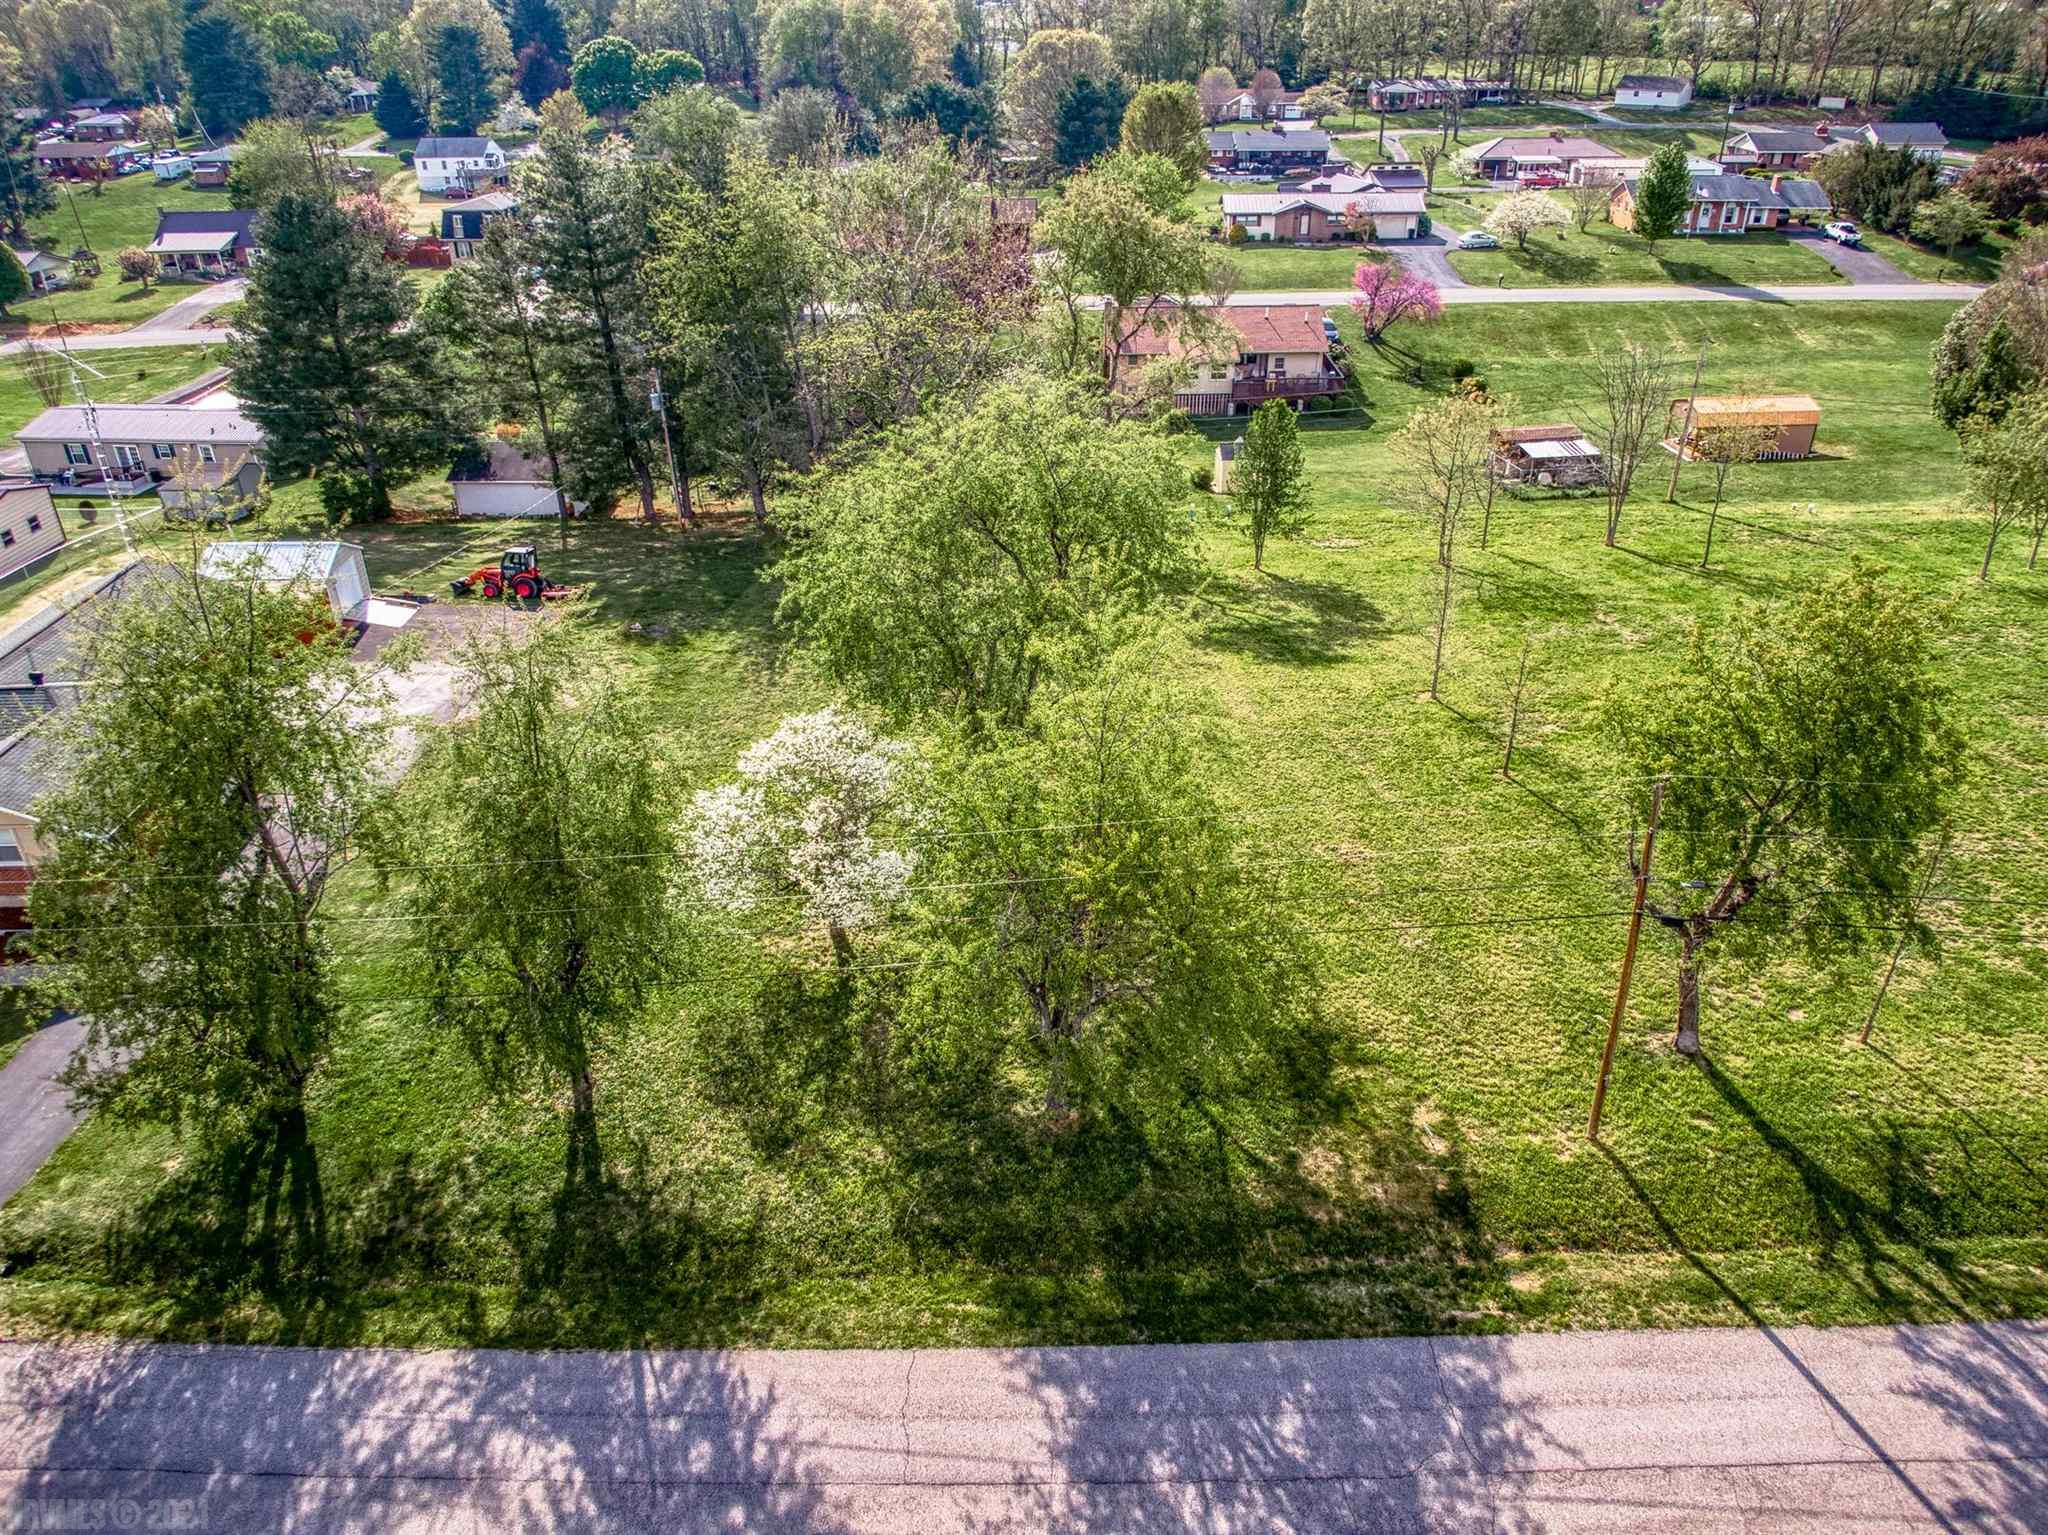 Excellent building location!  Cleared, level lot in convenient location to Interstate 81 and Route 100.  Shopping, restaurants and schools are just a few of the amenities easily accessed.  Public water and sewer are available at street. Call Listing Agent with questions